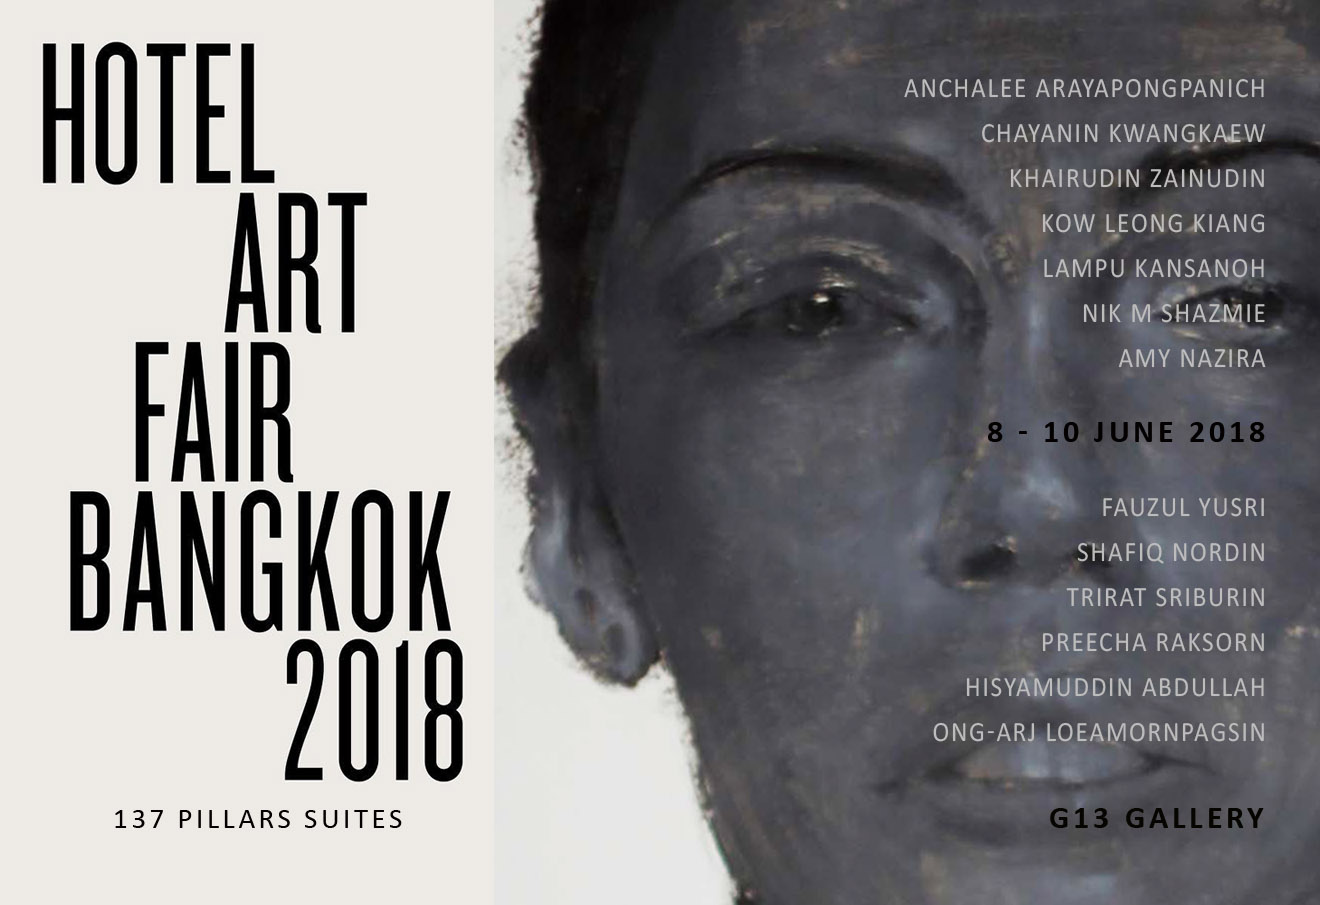 Bangkok Hotel Art Fair 2018